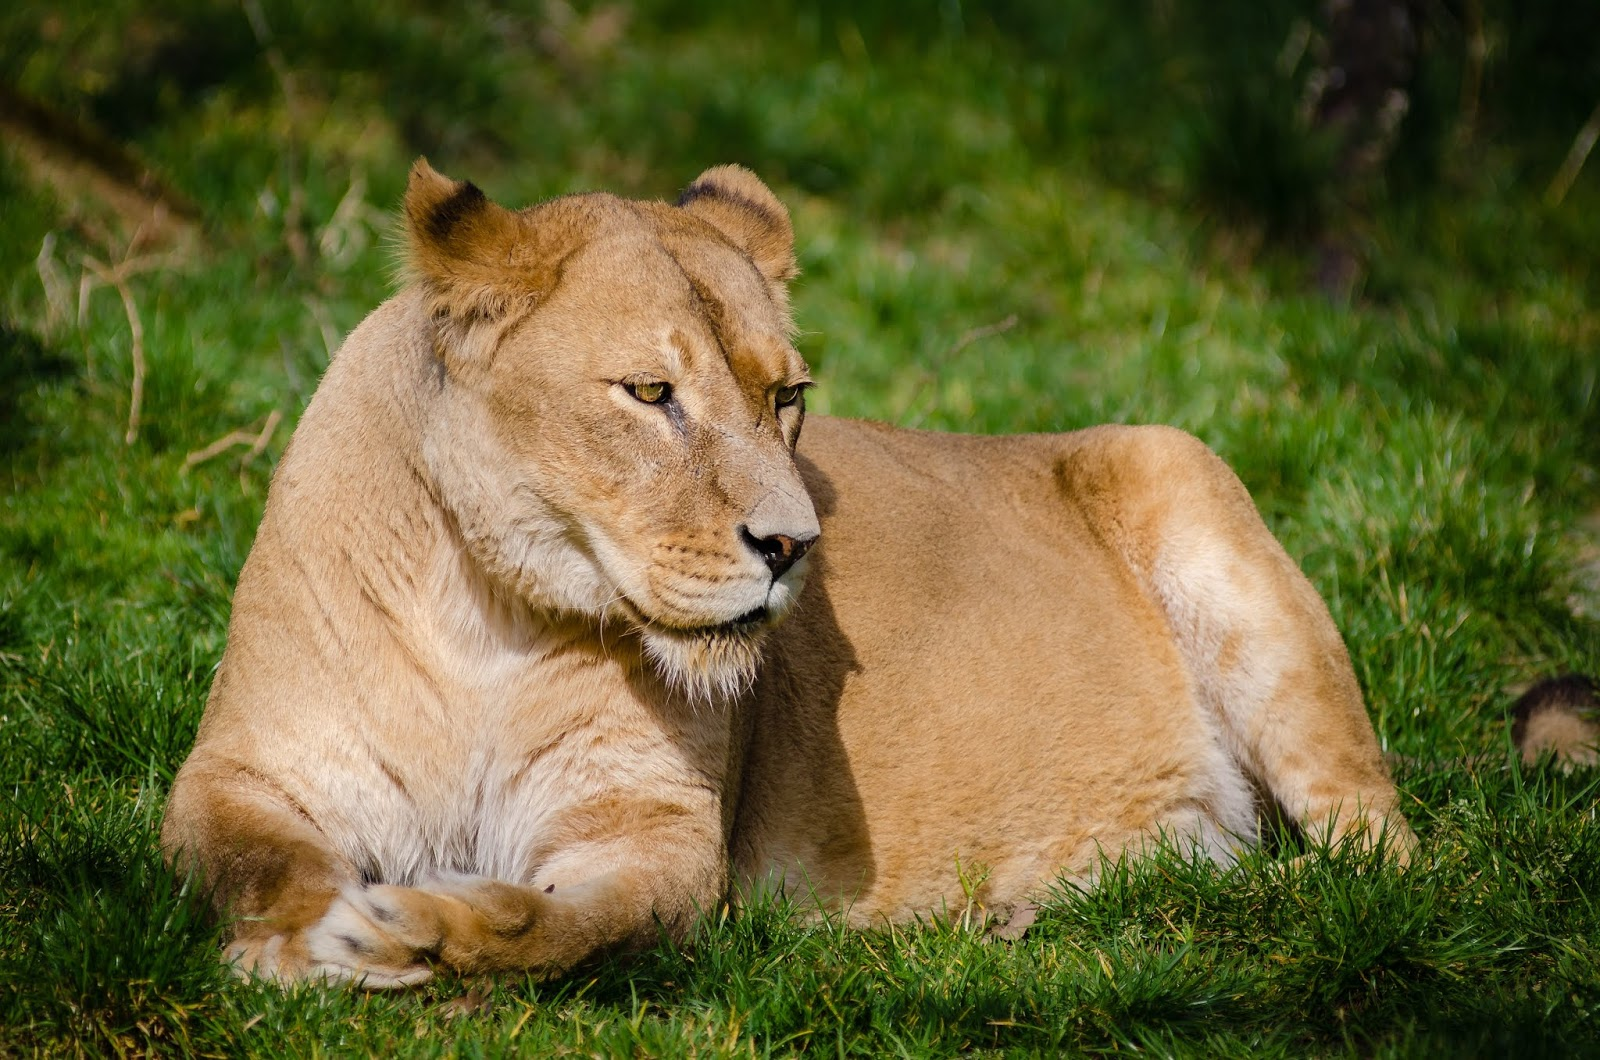 brown-lioness-laying-on-green-grass-during-daytime,lion images